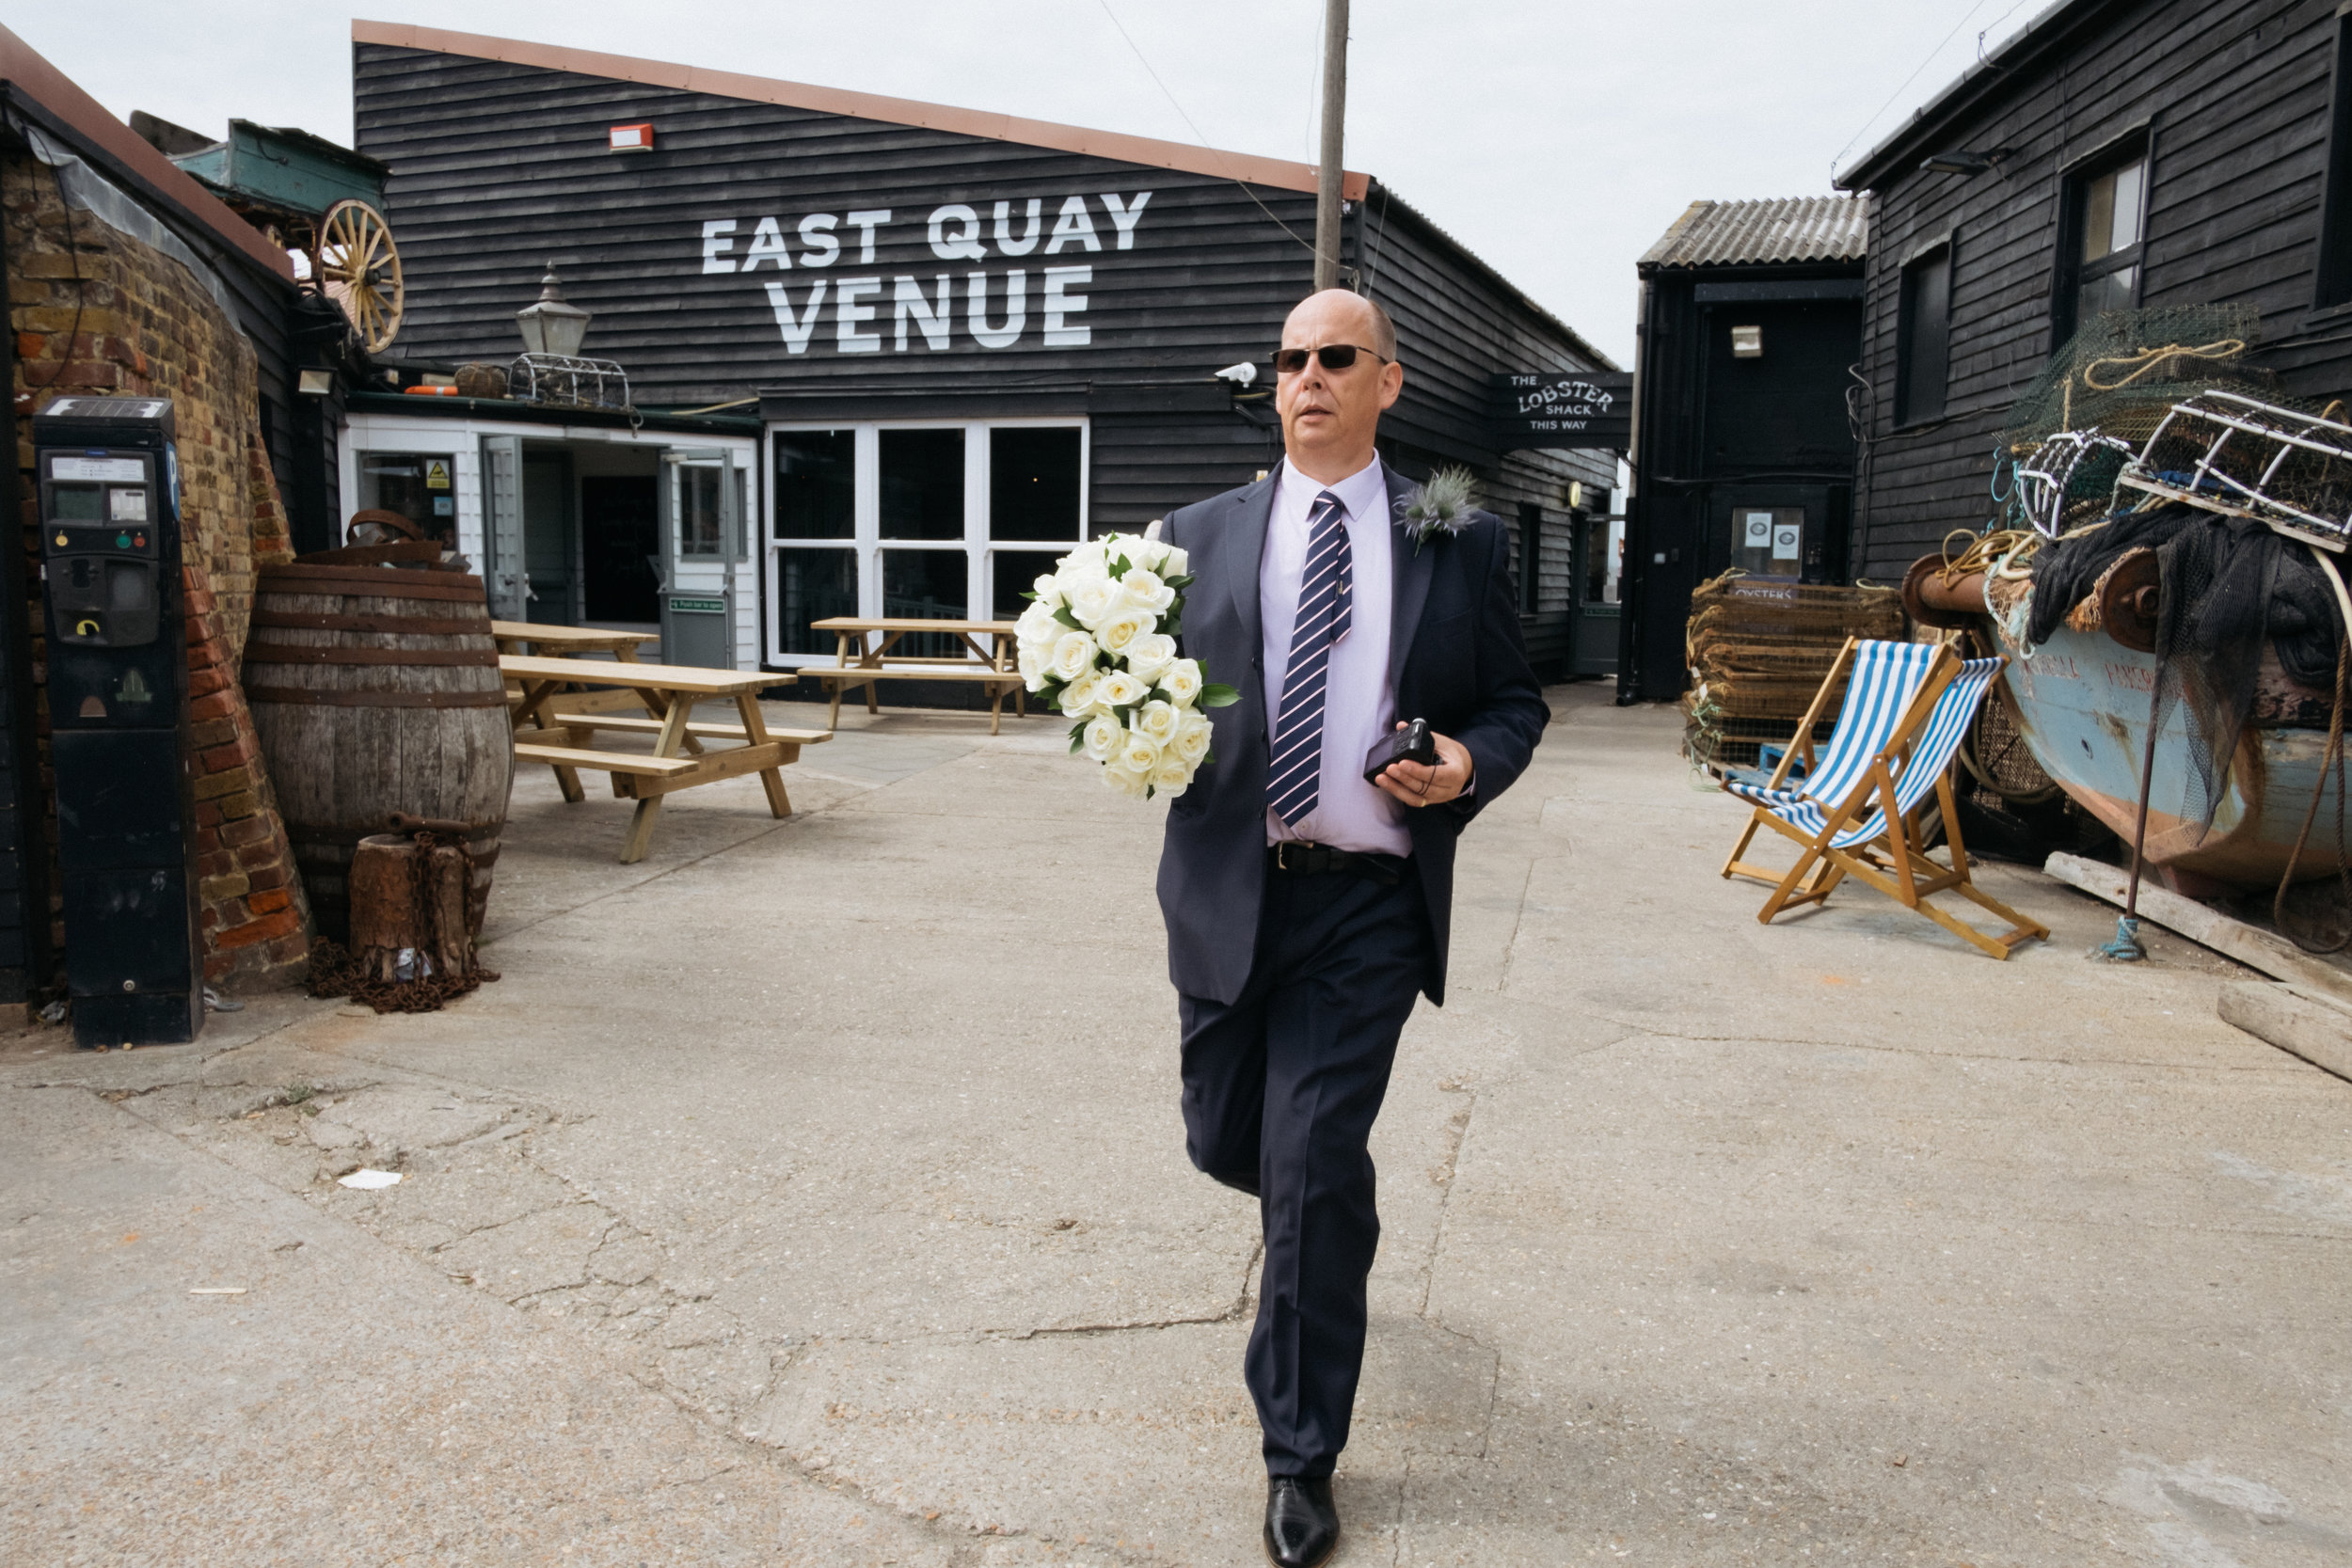 Father of the bride at East Quay wedding